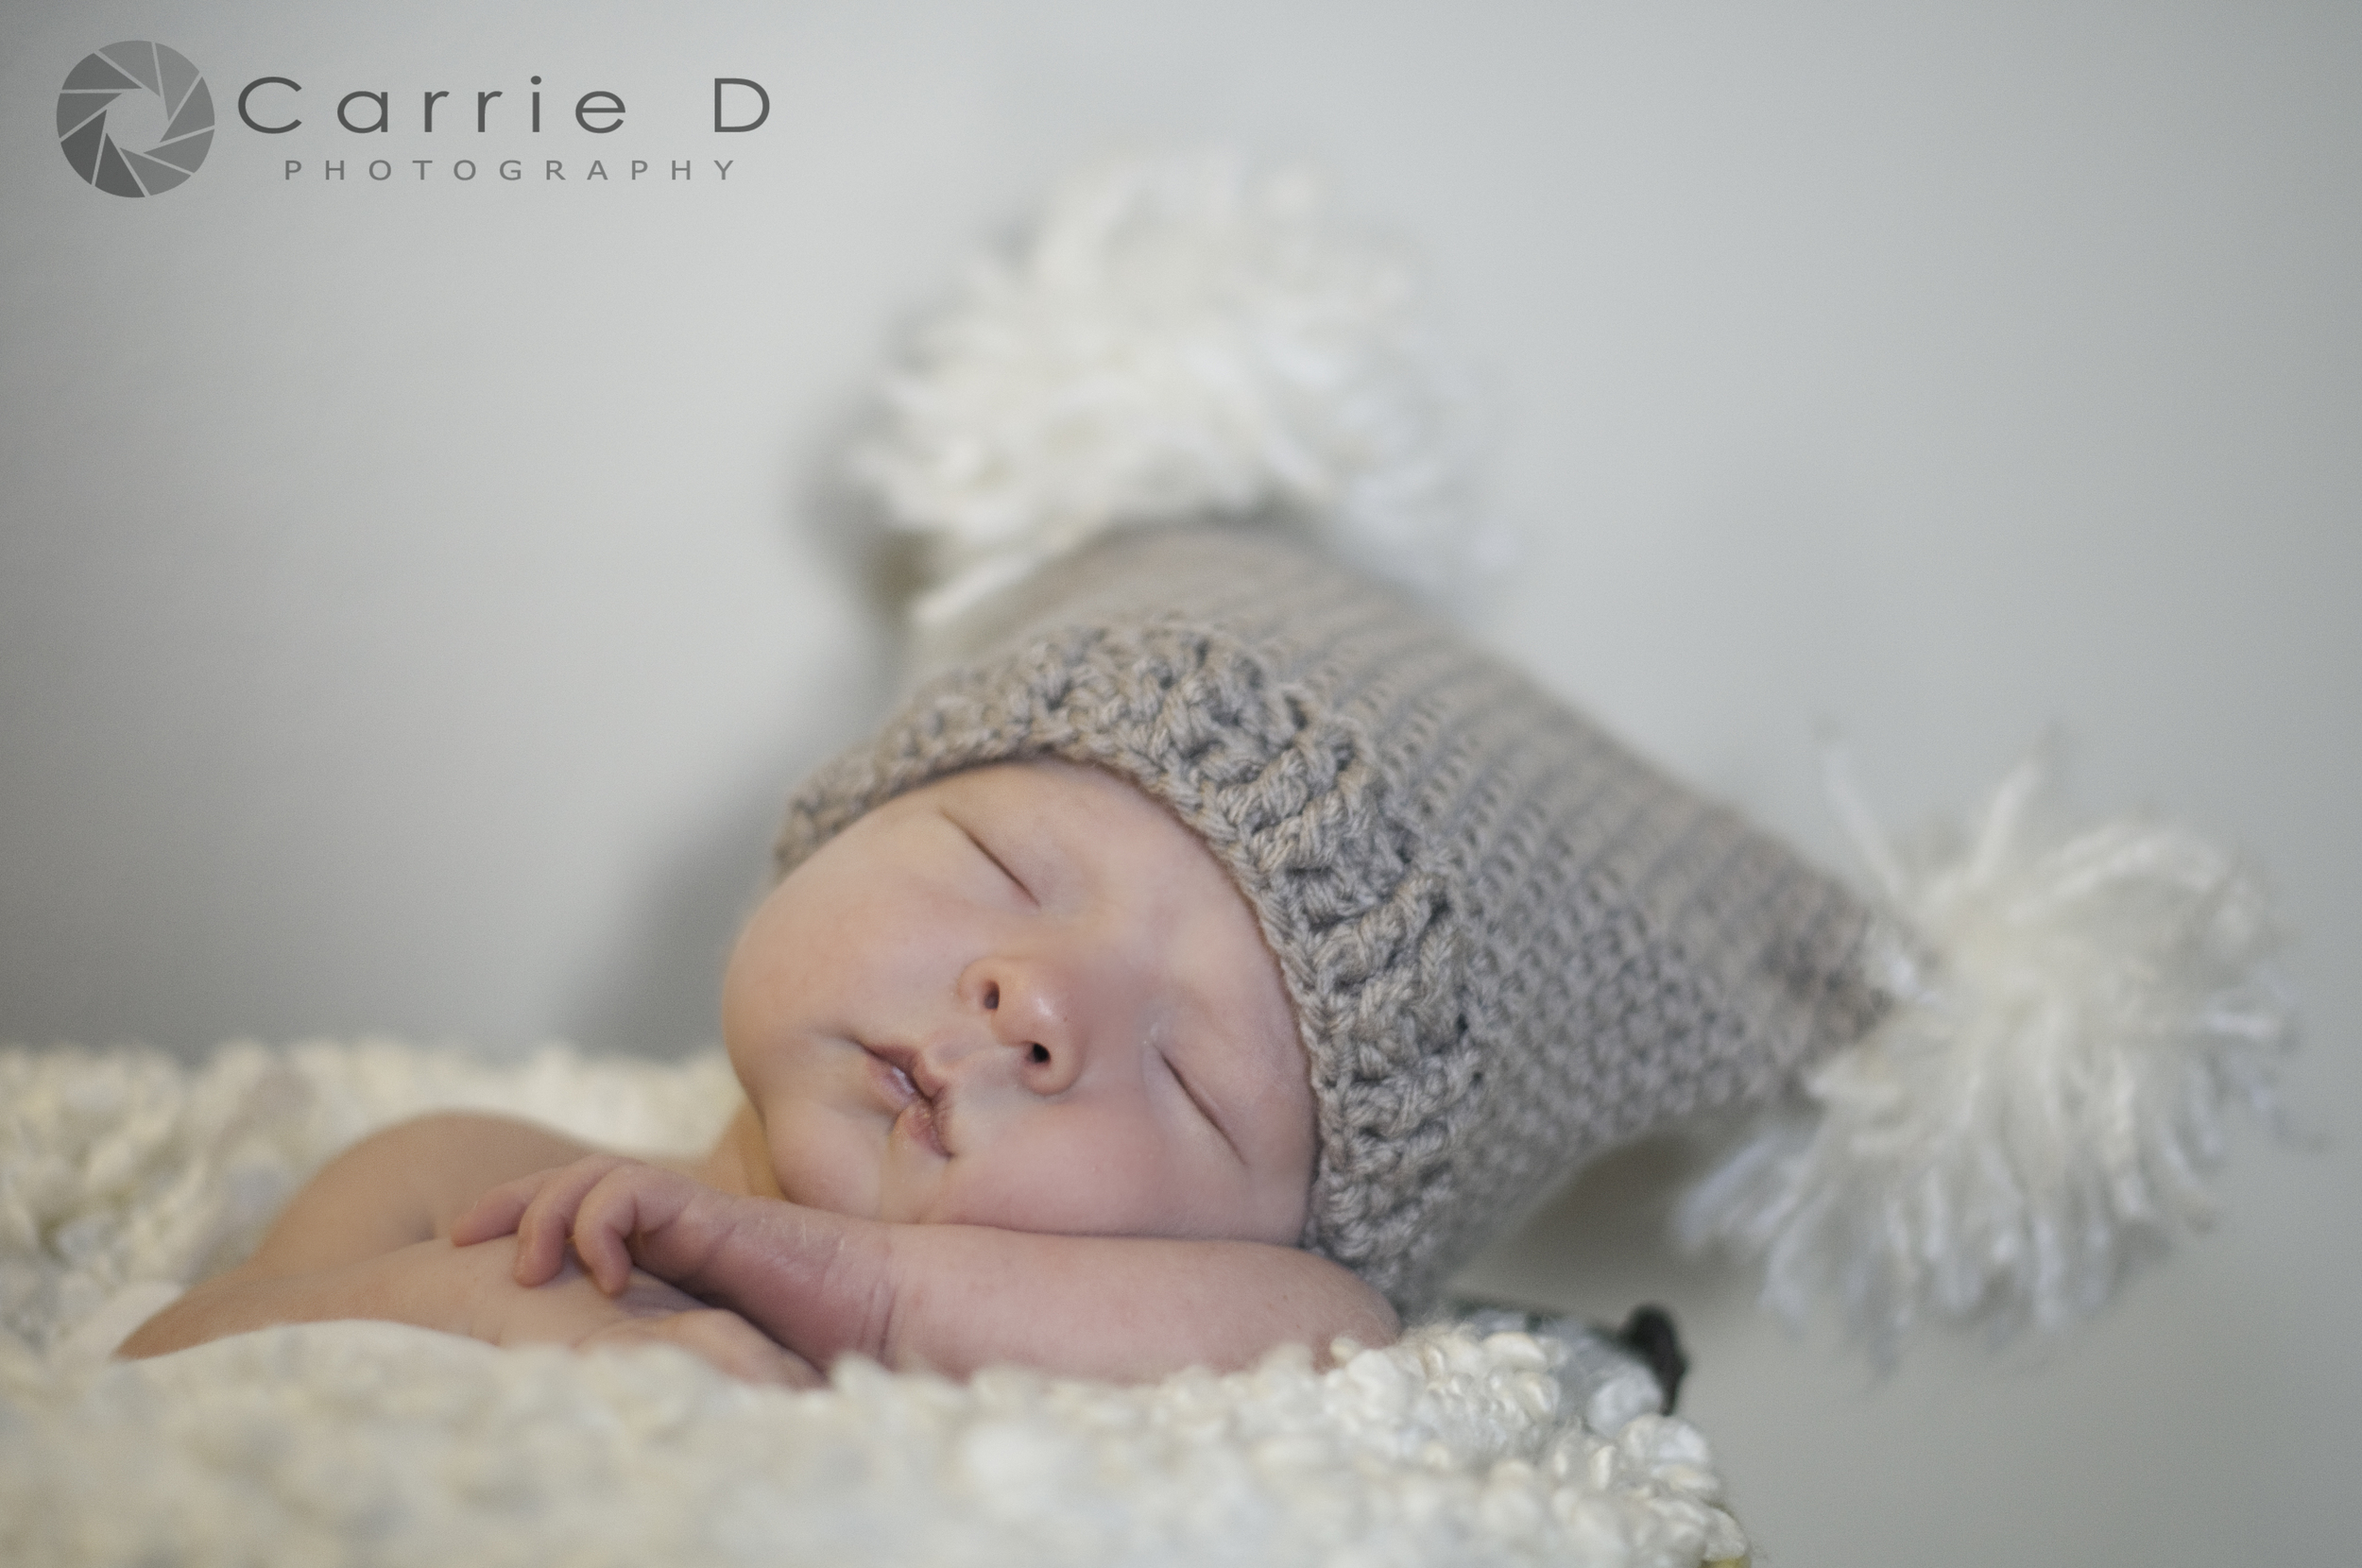 Northern Virginia Newborn Photographer - Northern Virginia Natural Light Photographer - Northern Virginia Natural Light Newborn Photographer - Natural Light Newborn Photography - Newborn Poses - Newborn Photographer - Virginia Newborn Photographer